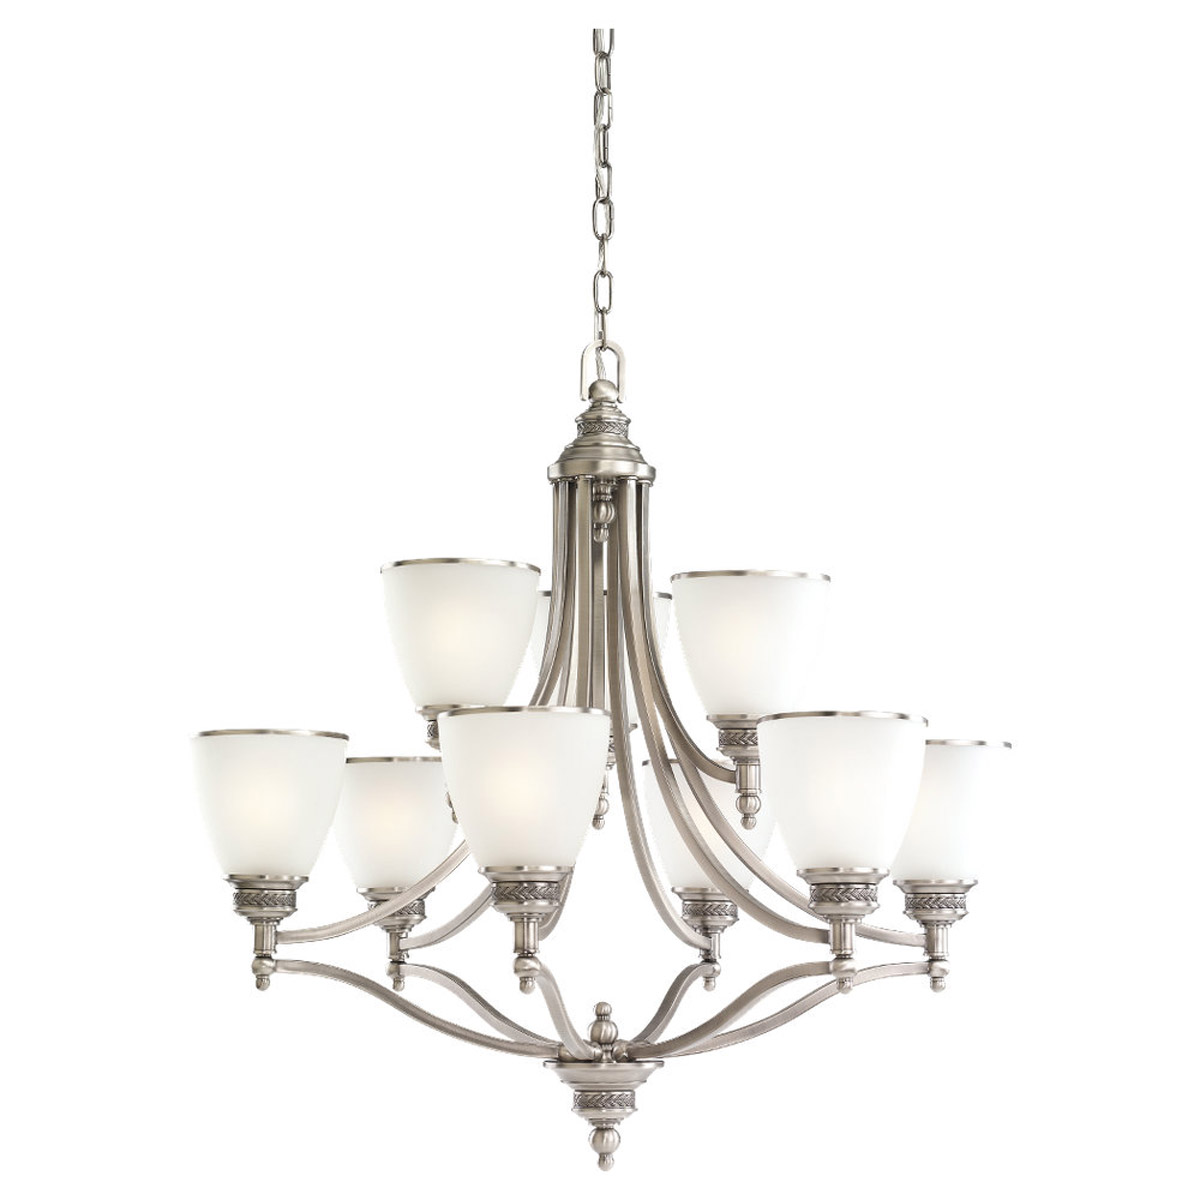 Sea Gull 31351-965 Laurel Leaf 9 Light 30 inch Antique Brushed Nickel Chandelier Ceiling Light photo